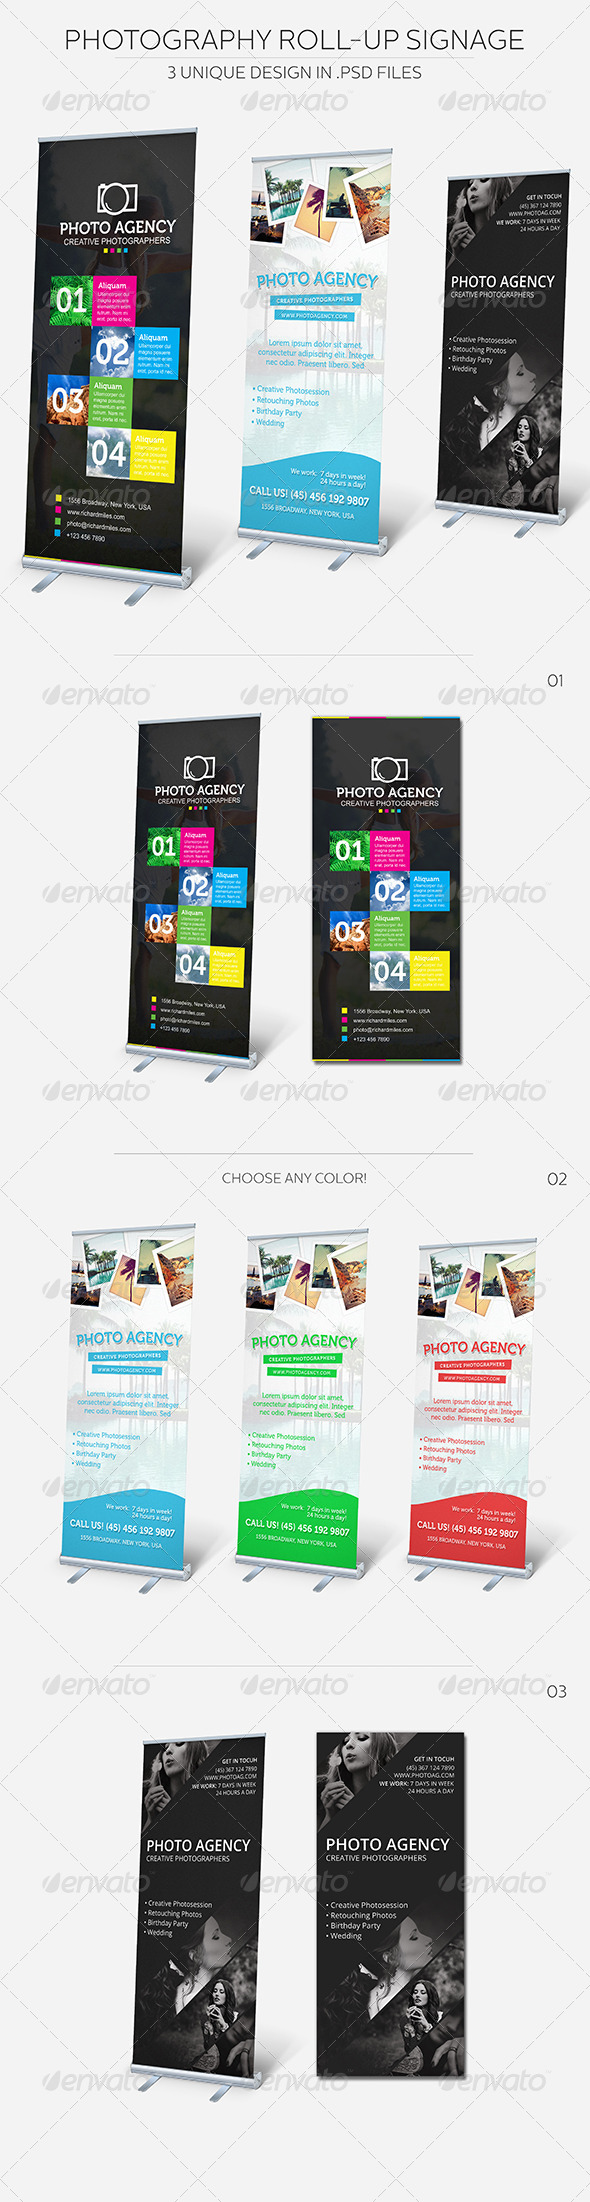 GraphicRiver Photography Roll-up Signage 5416669